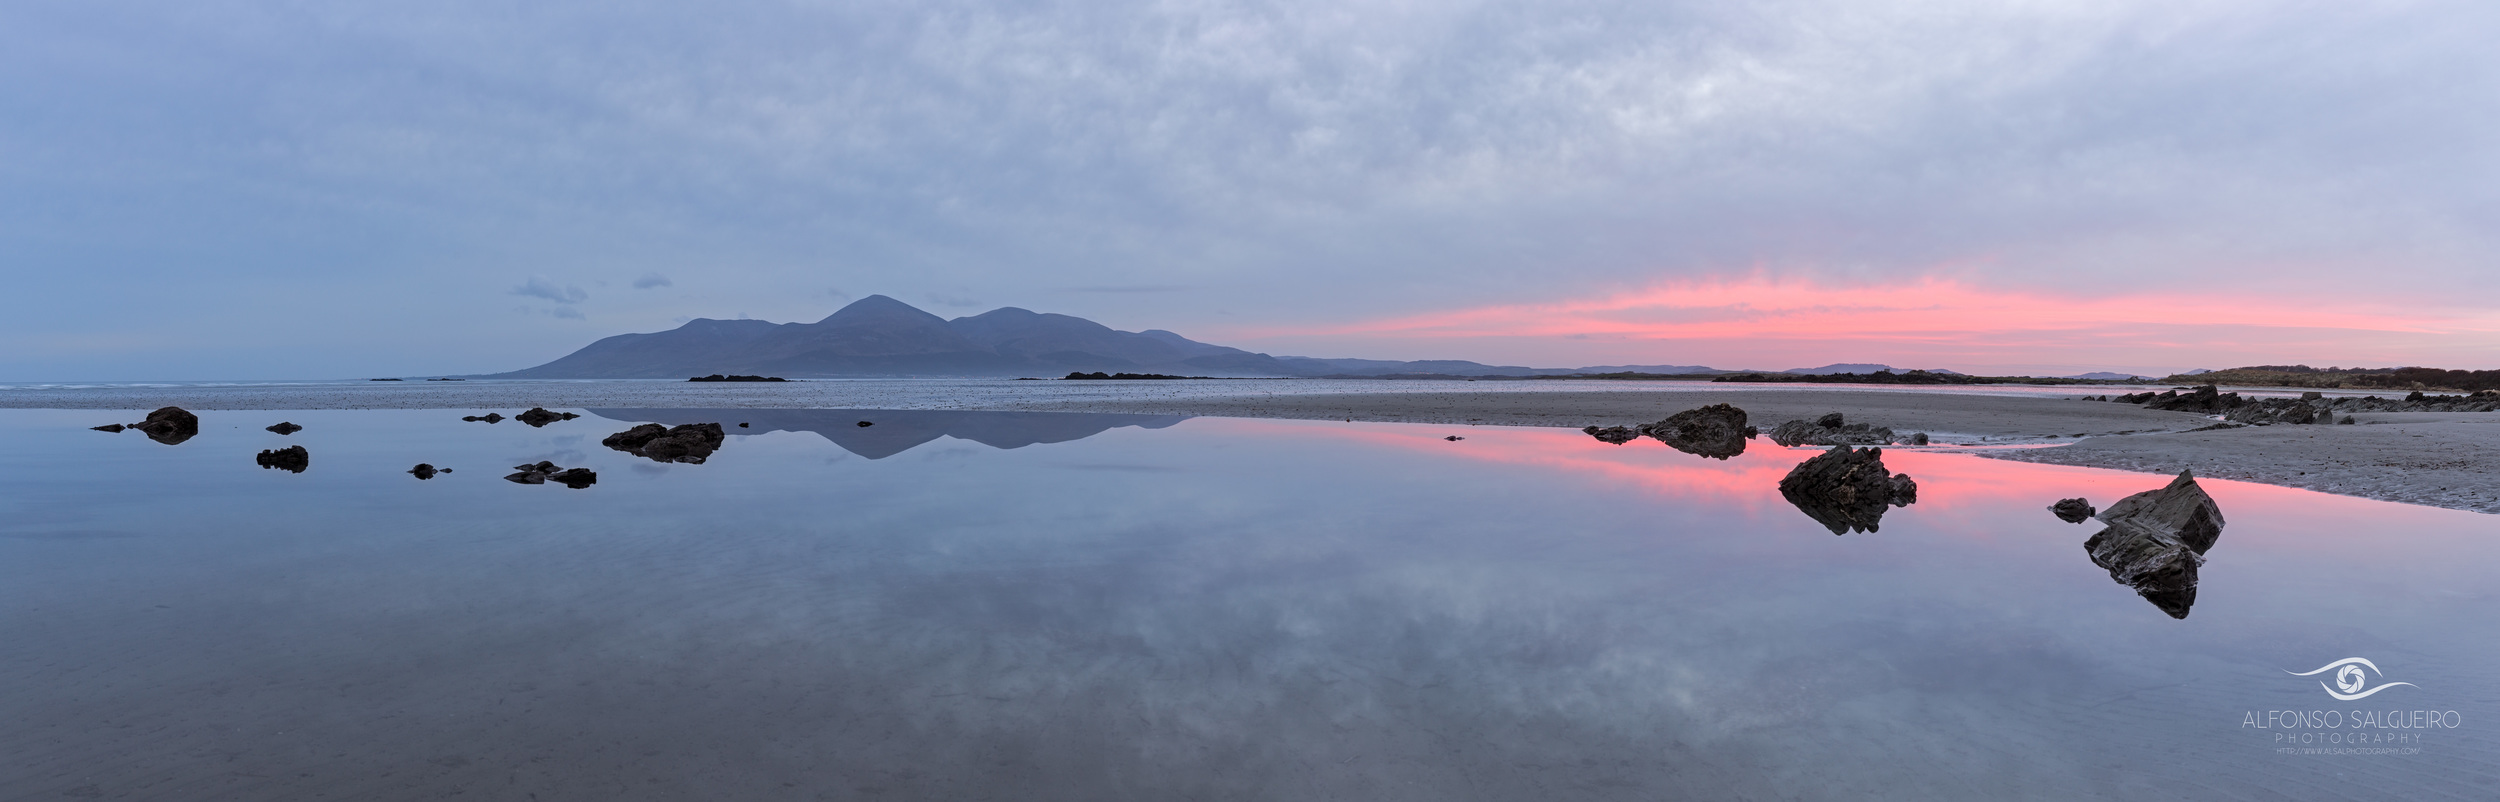 Blue hour, Tyrella beach